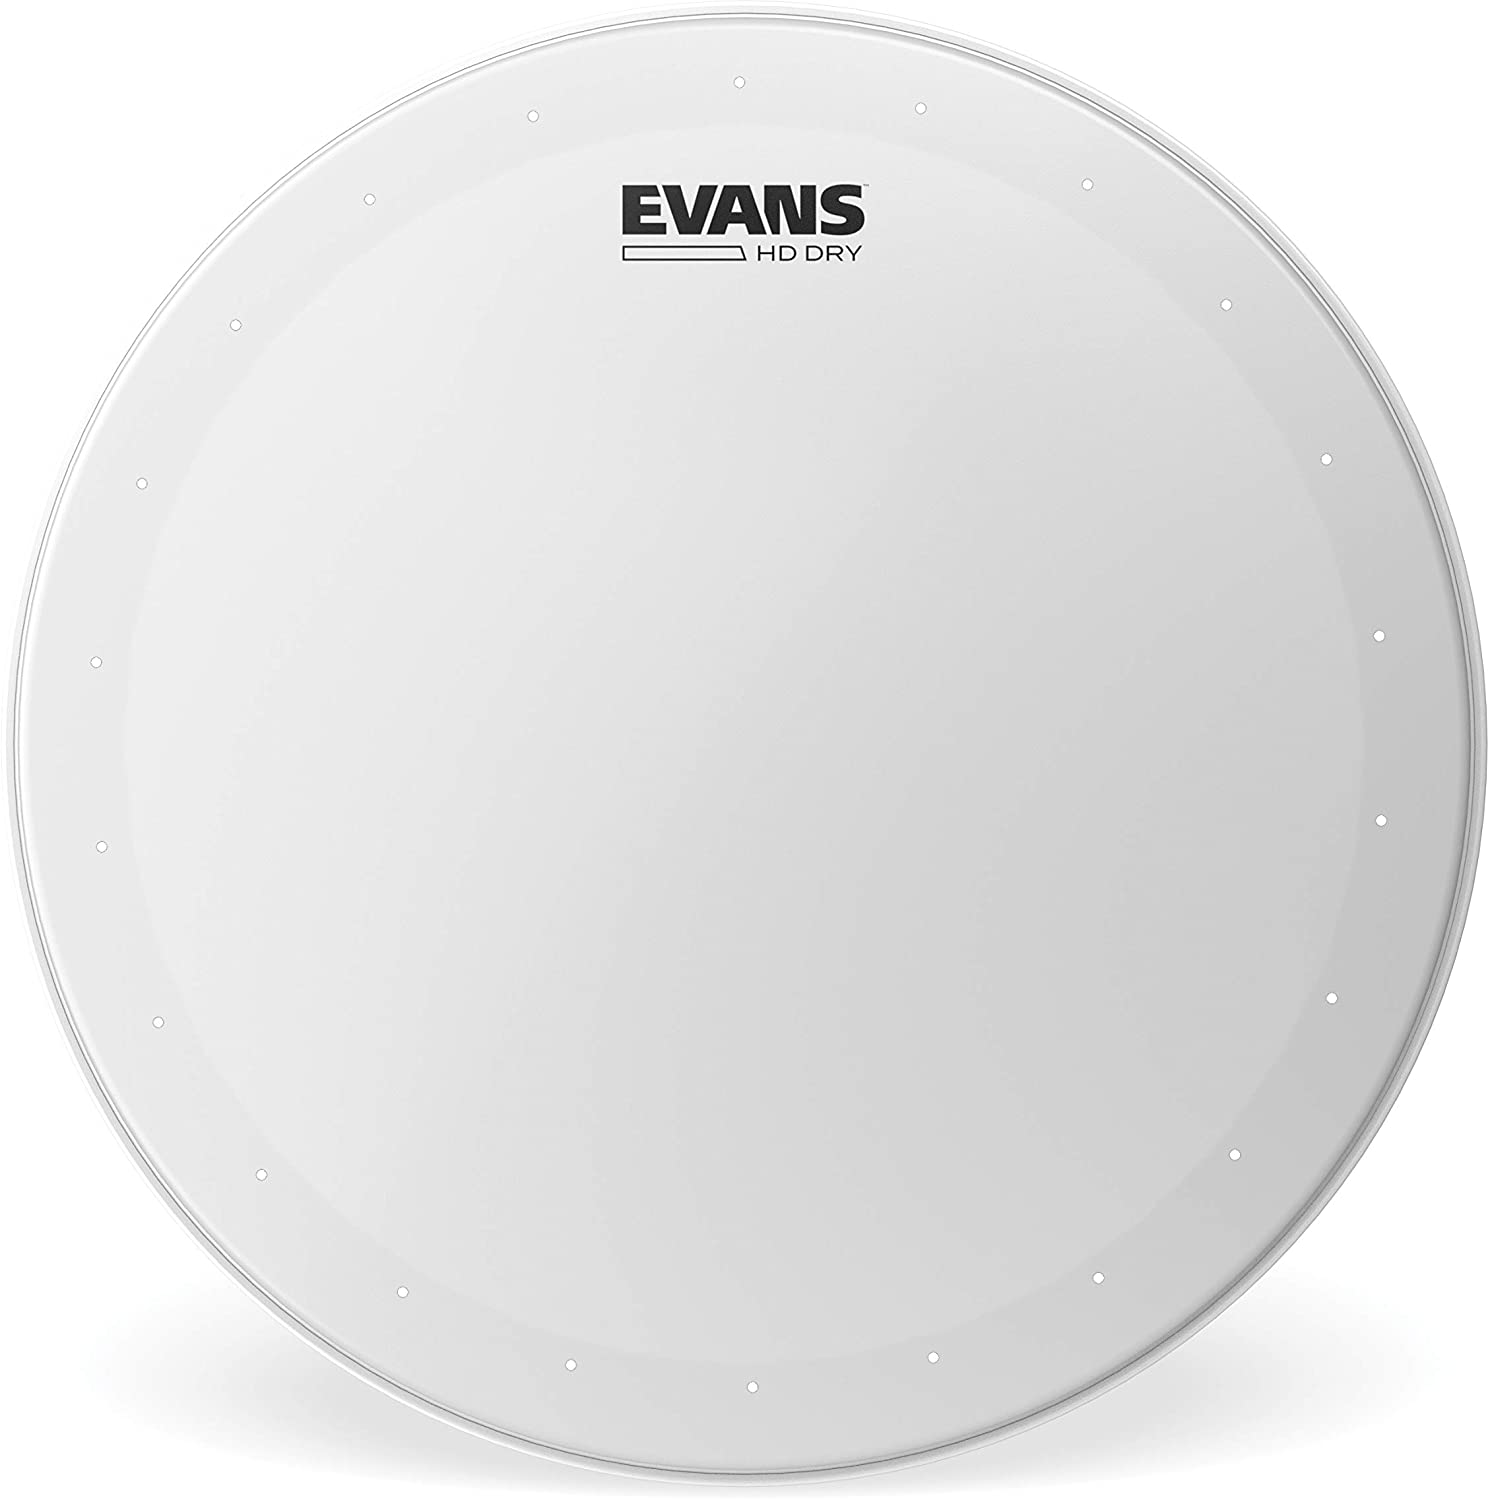 Evans Genera HD Dry Snare Drum Head, 13 (White)– Coated Drum Head Made Using Two Plies of Film –Overtone Ring Controls Sustain – Small Vent Holes Eliminate Stray Harmonics –Great for Live and Studio 71270iyX36L